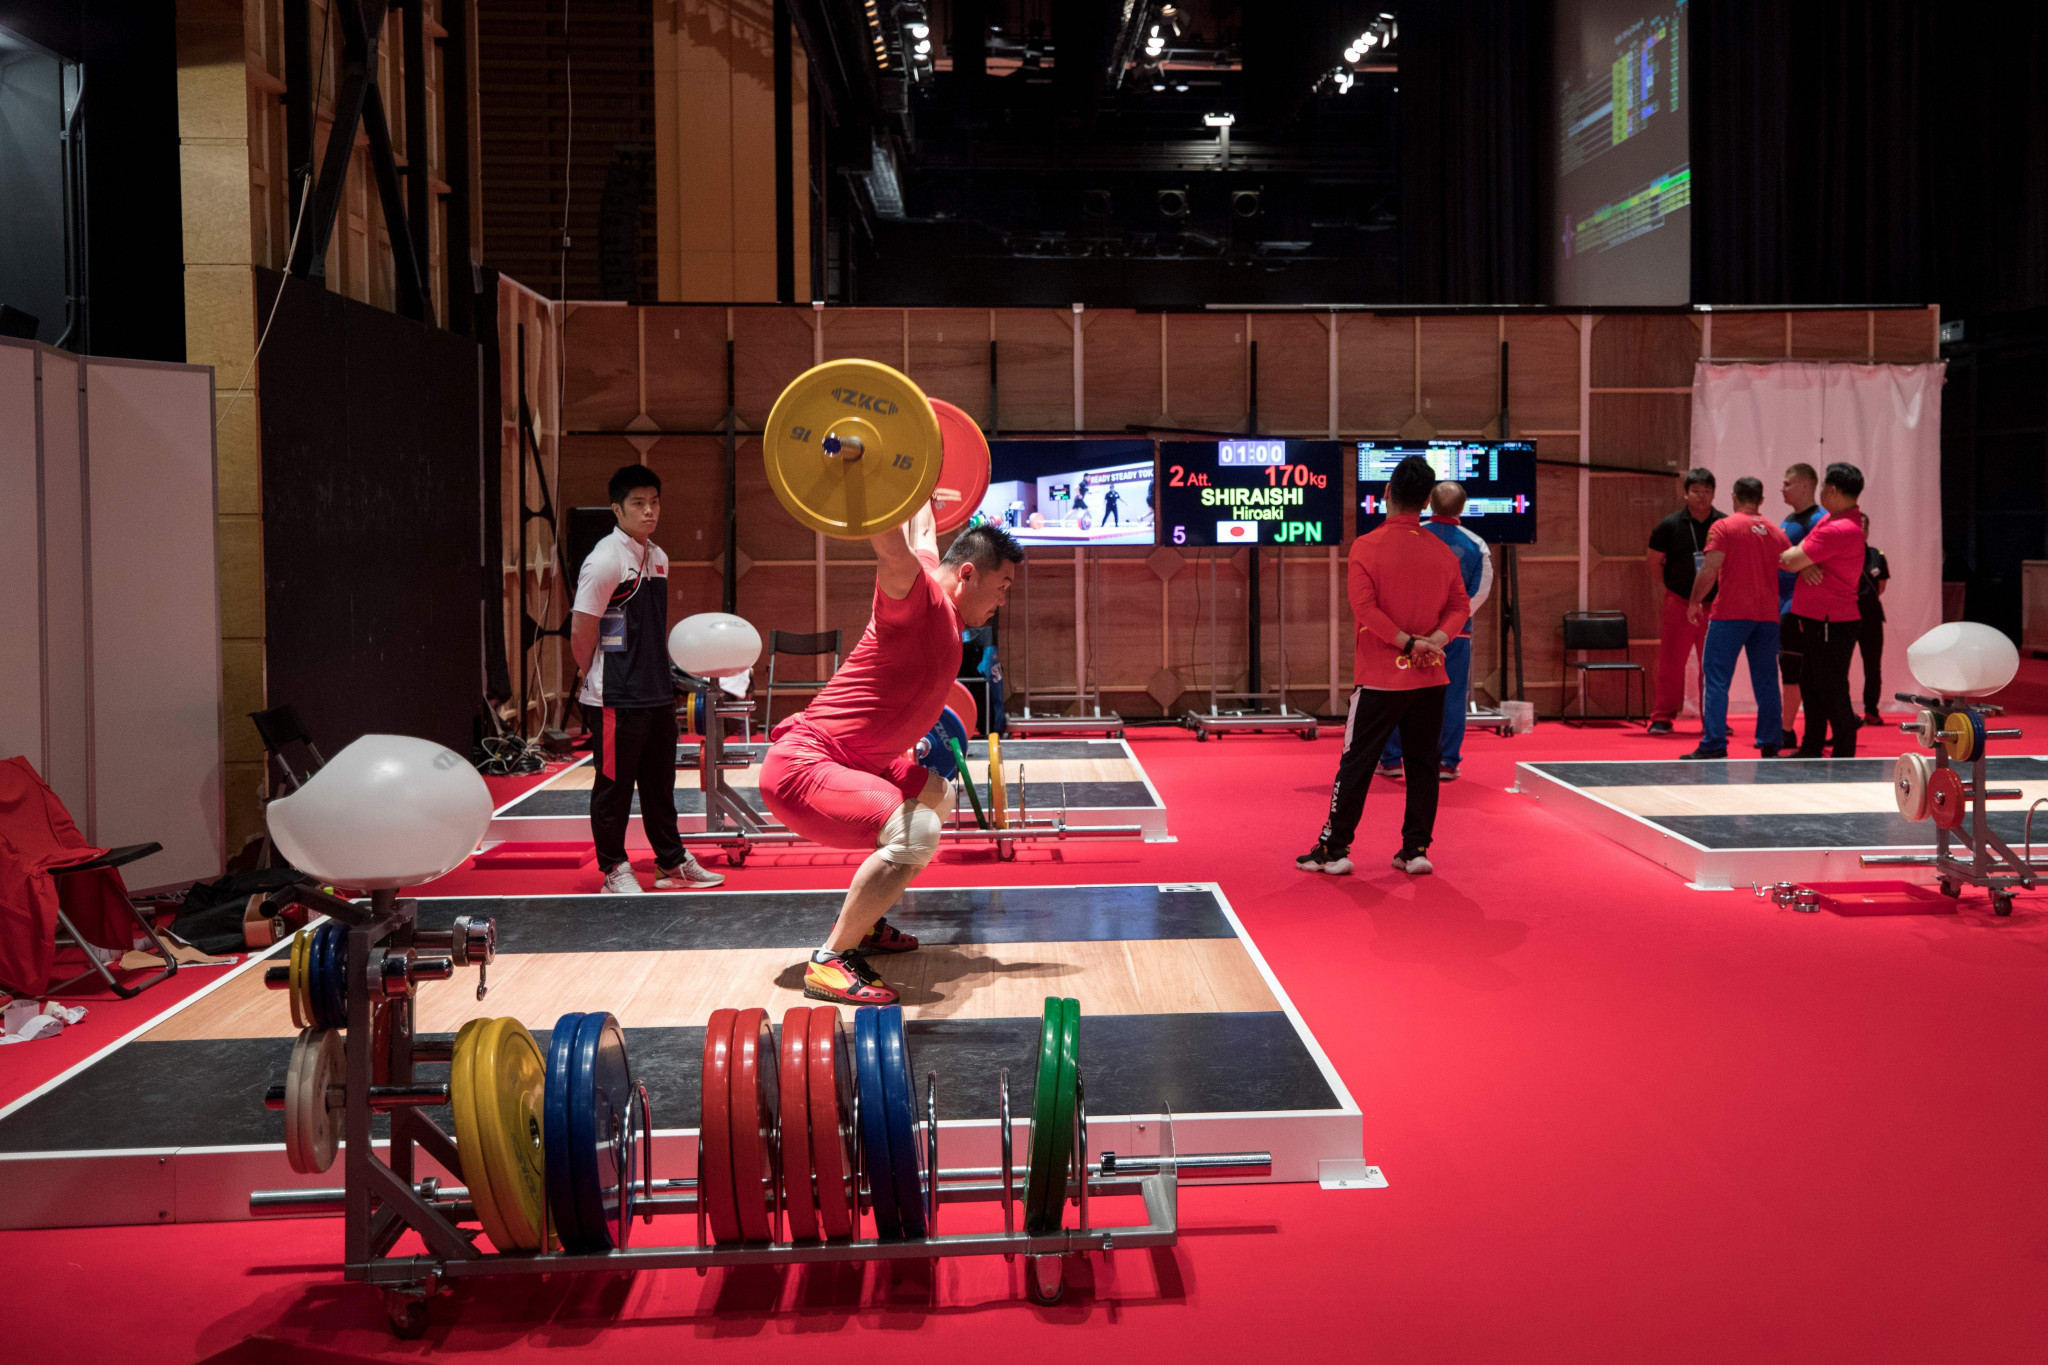 Weightlifting has seen a reduction in quota places and weight categories ©Getty Images